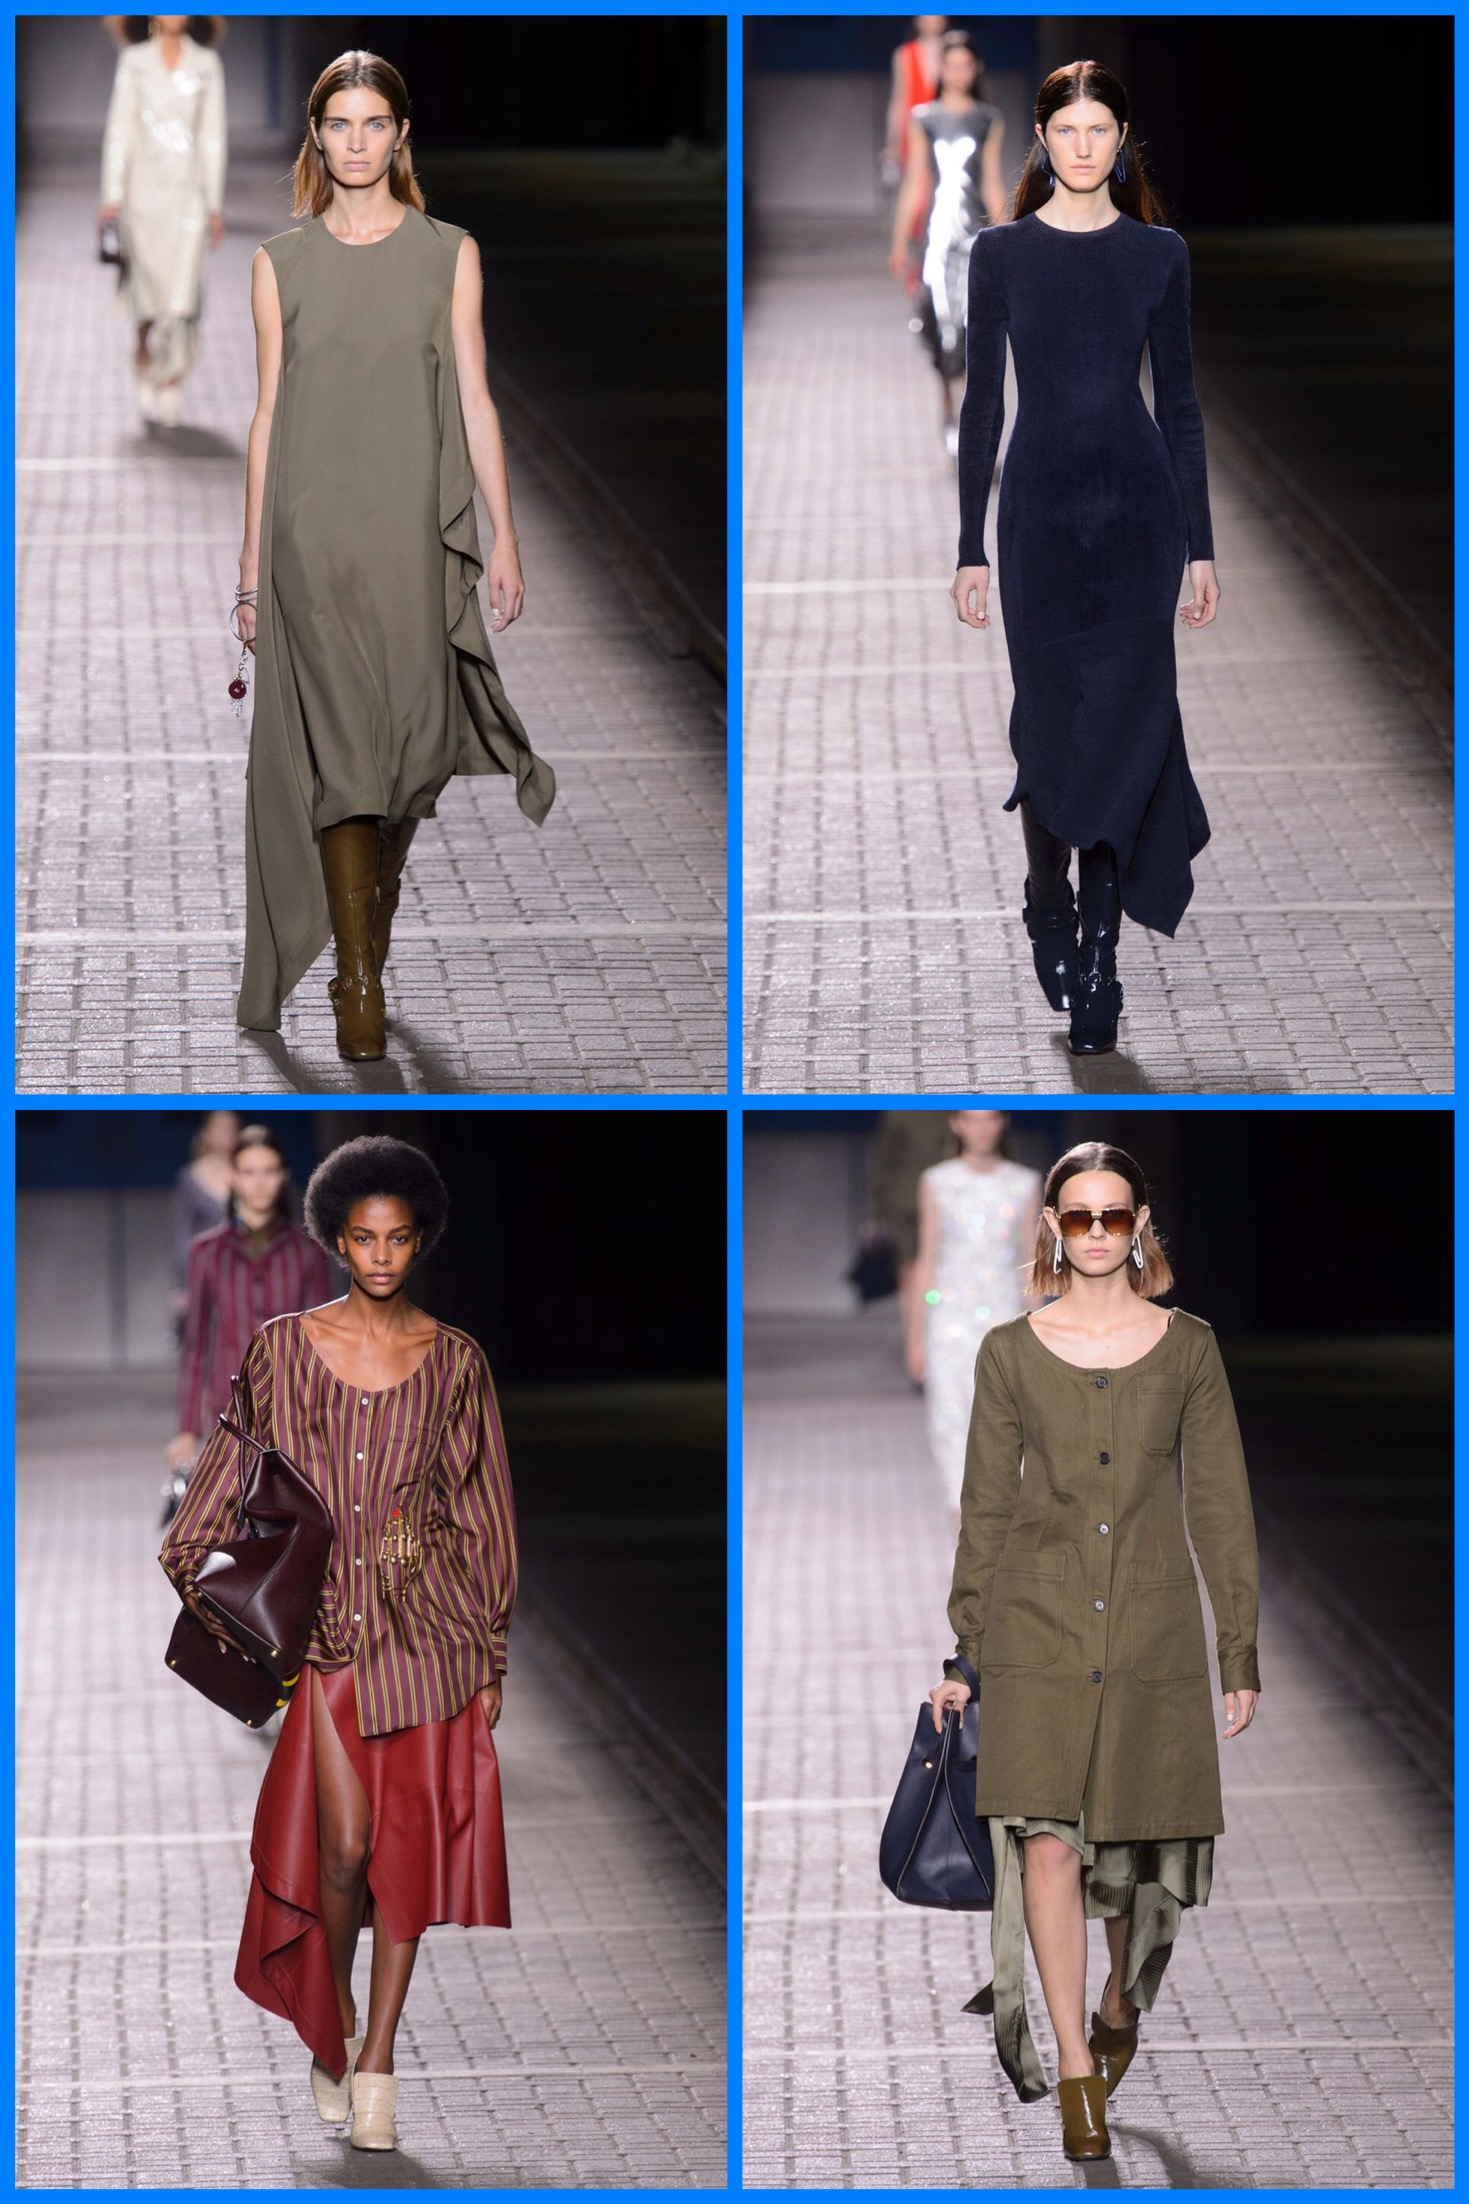 london-fashion-week-pret-a-porter-spring-summer-2017-style-mulberry